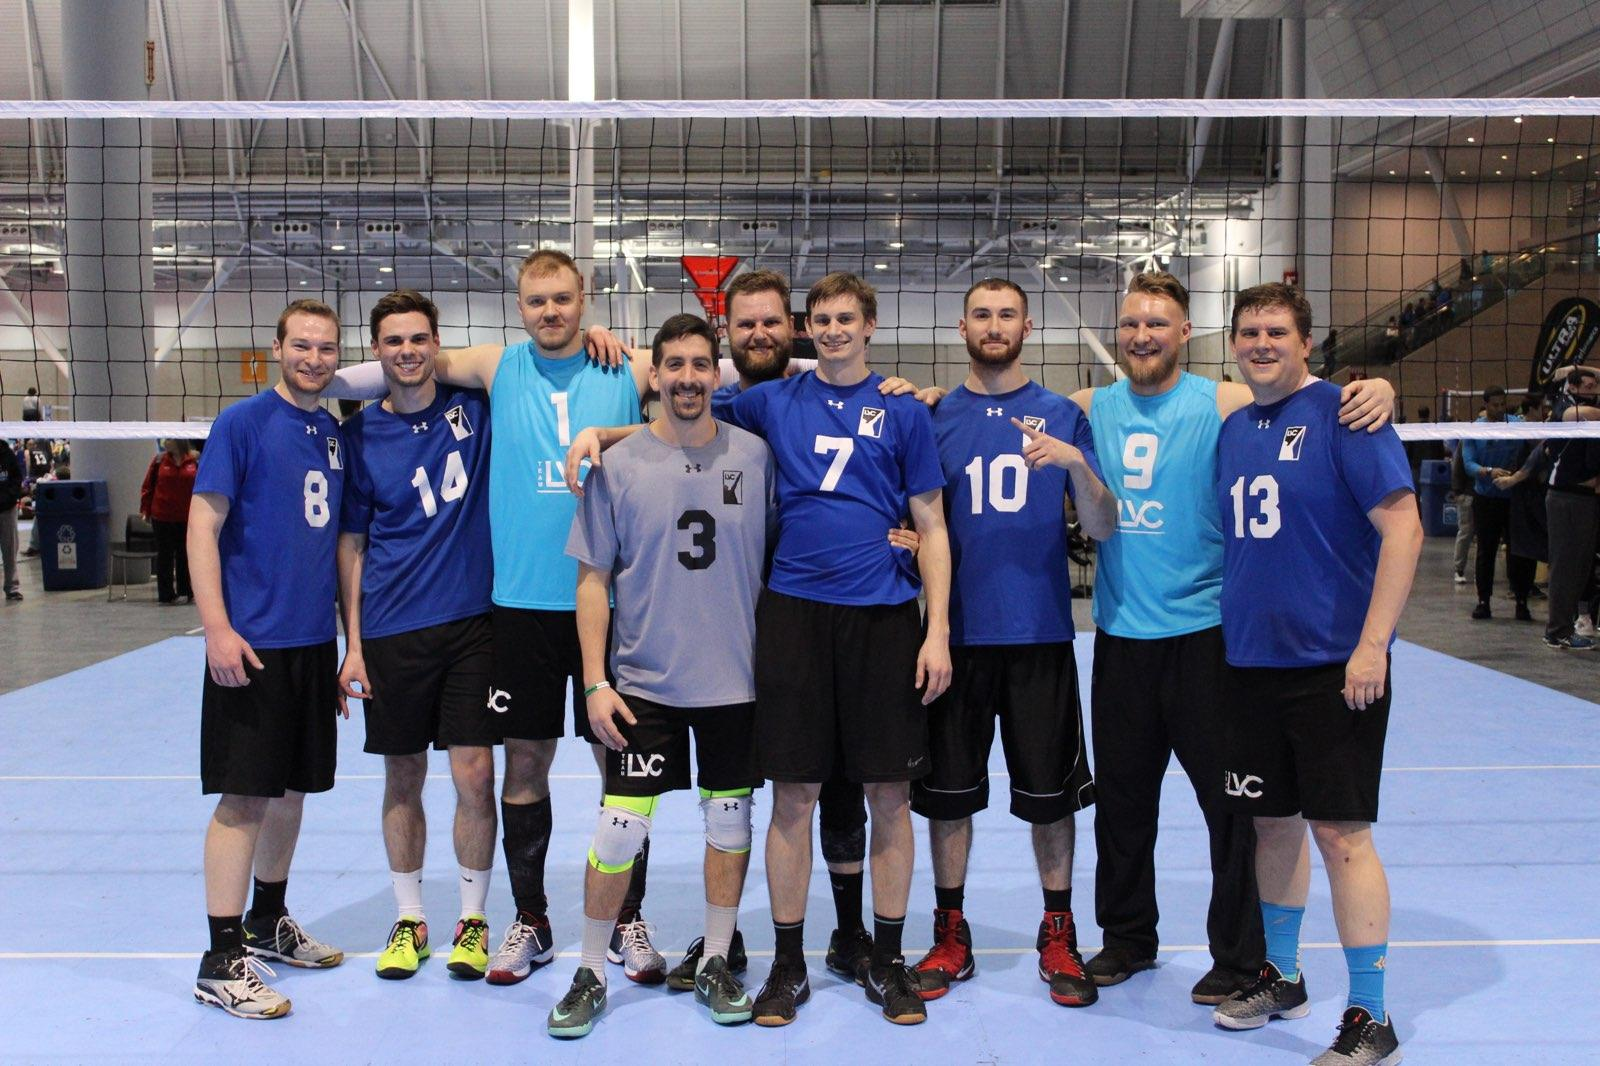 LVC Blue beats Overrated in the Men's USAV BB at the BCEC